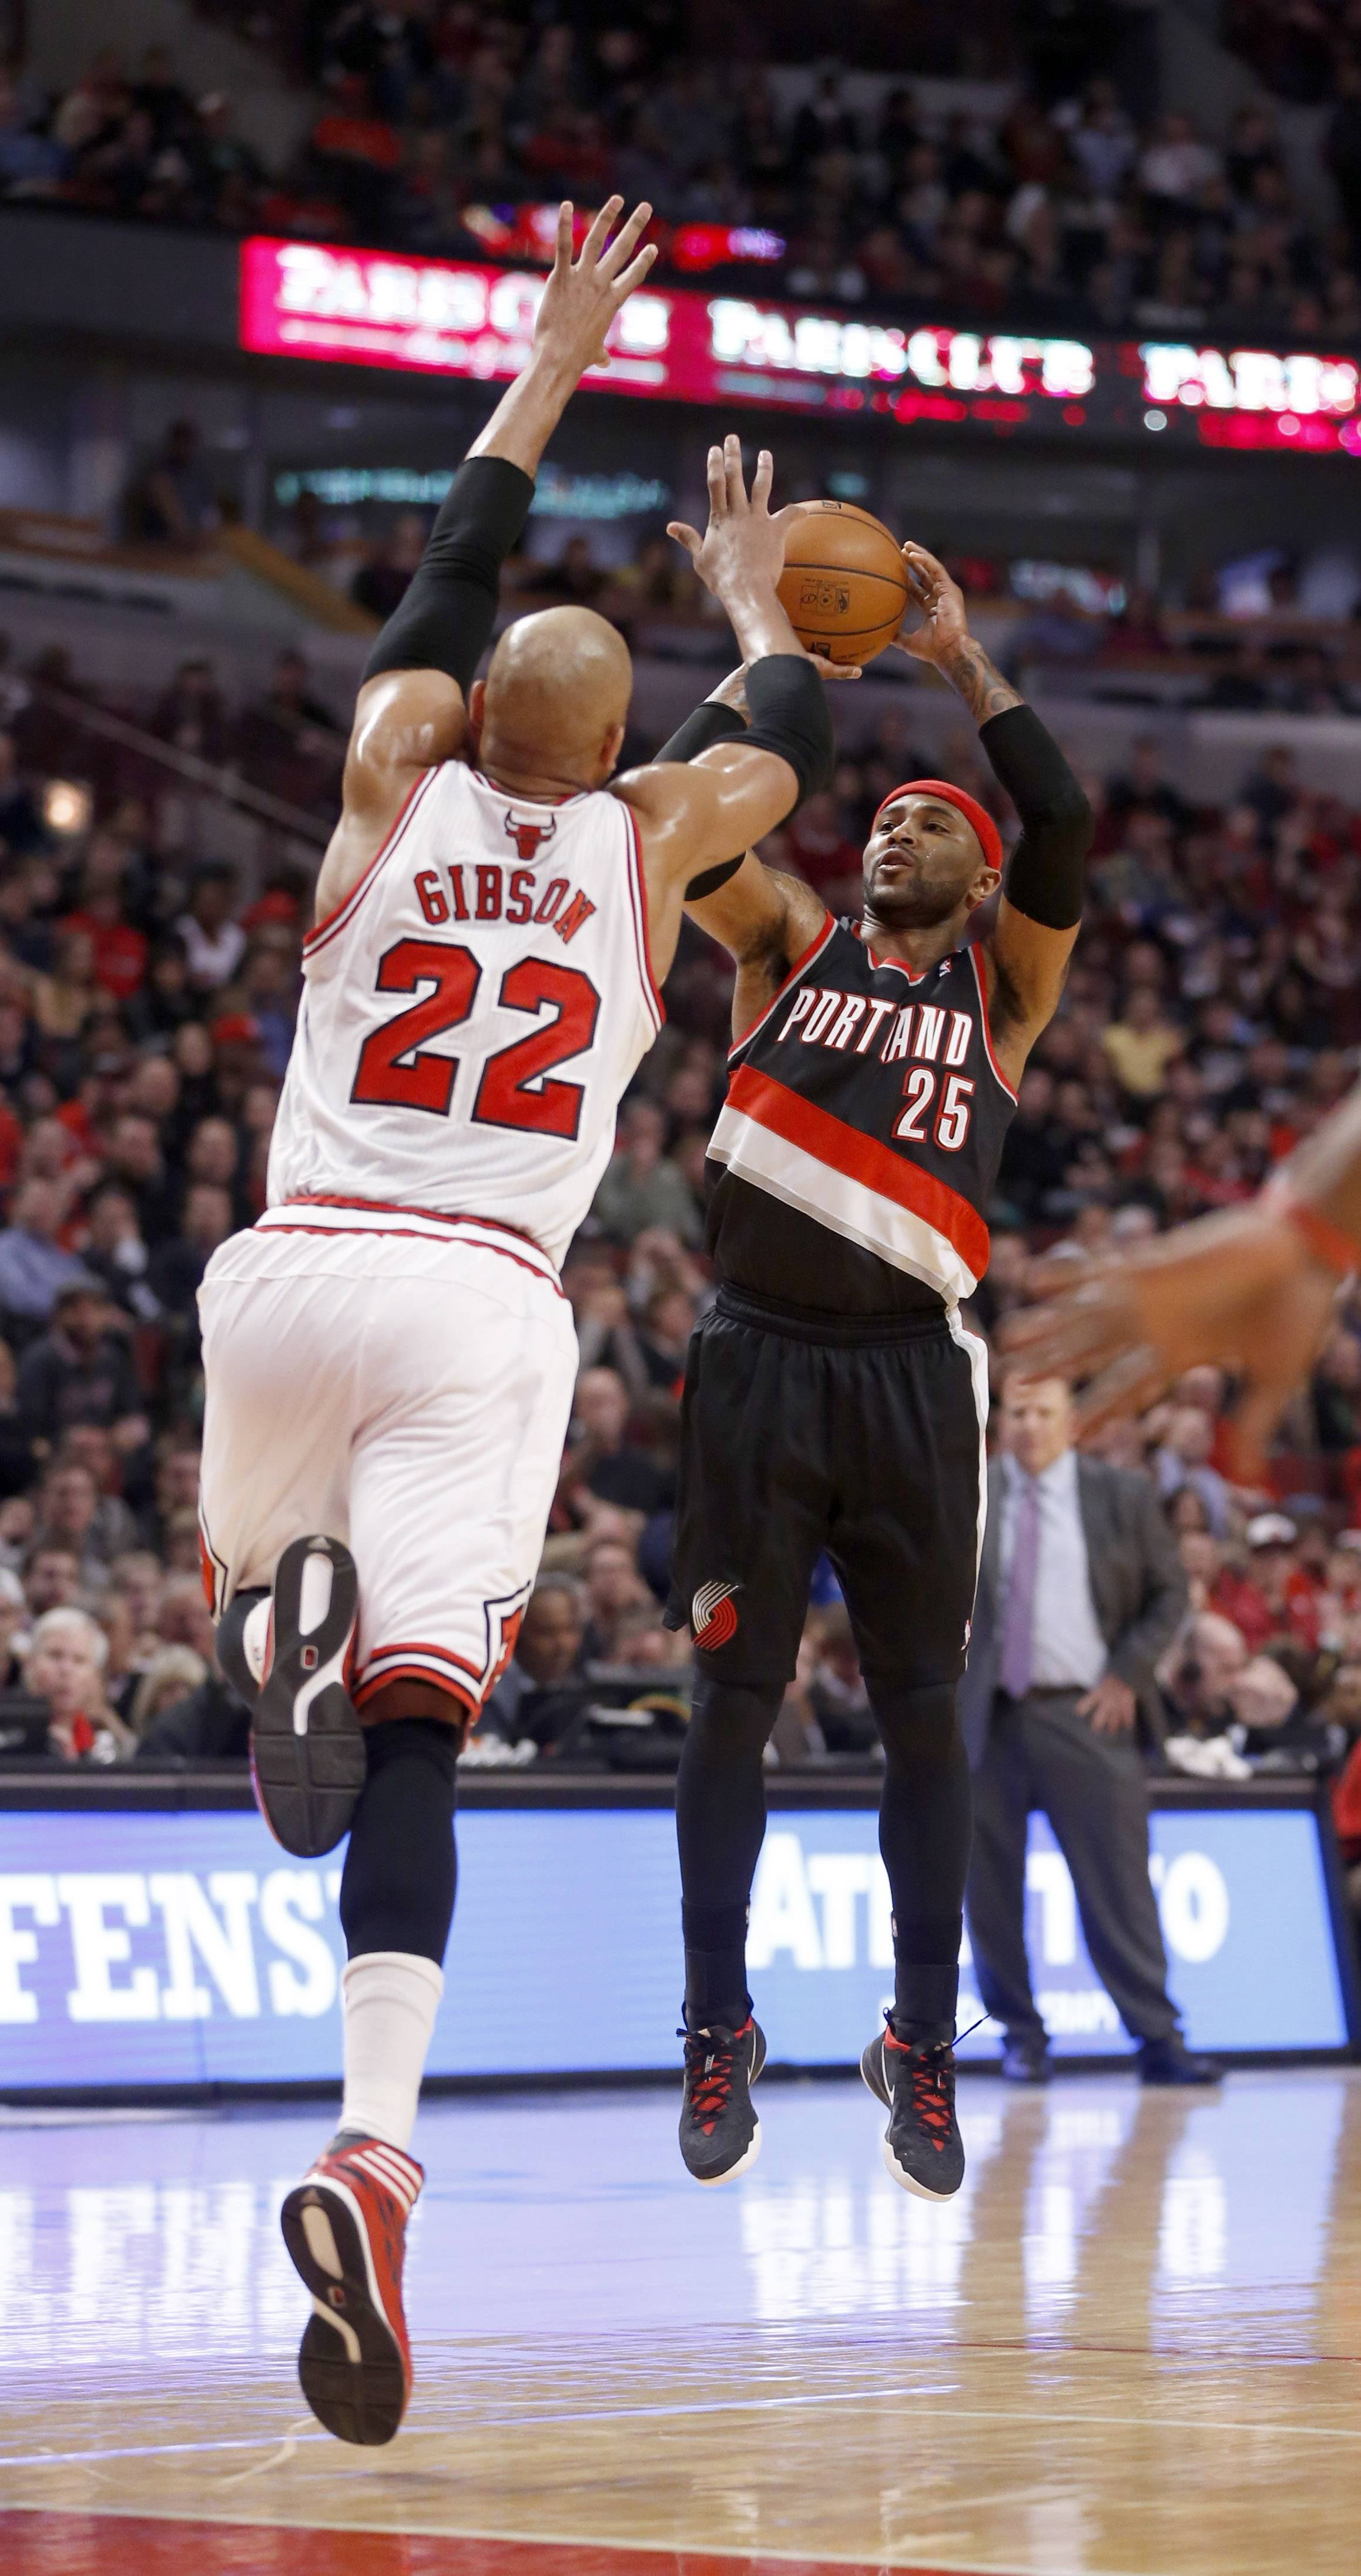 Trail Blazers guard Mo Williams fires up a jump shot as the Bulls' Taj Gibson leaps on defense Friday during action at the United Center.